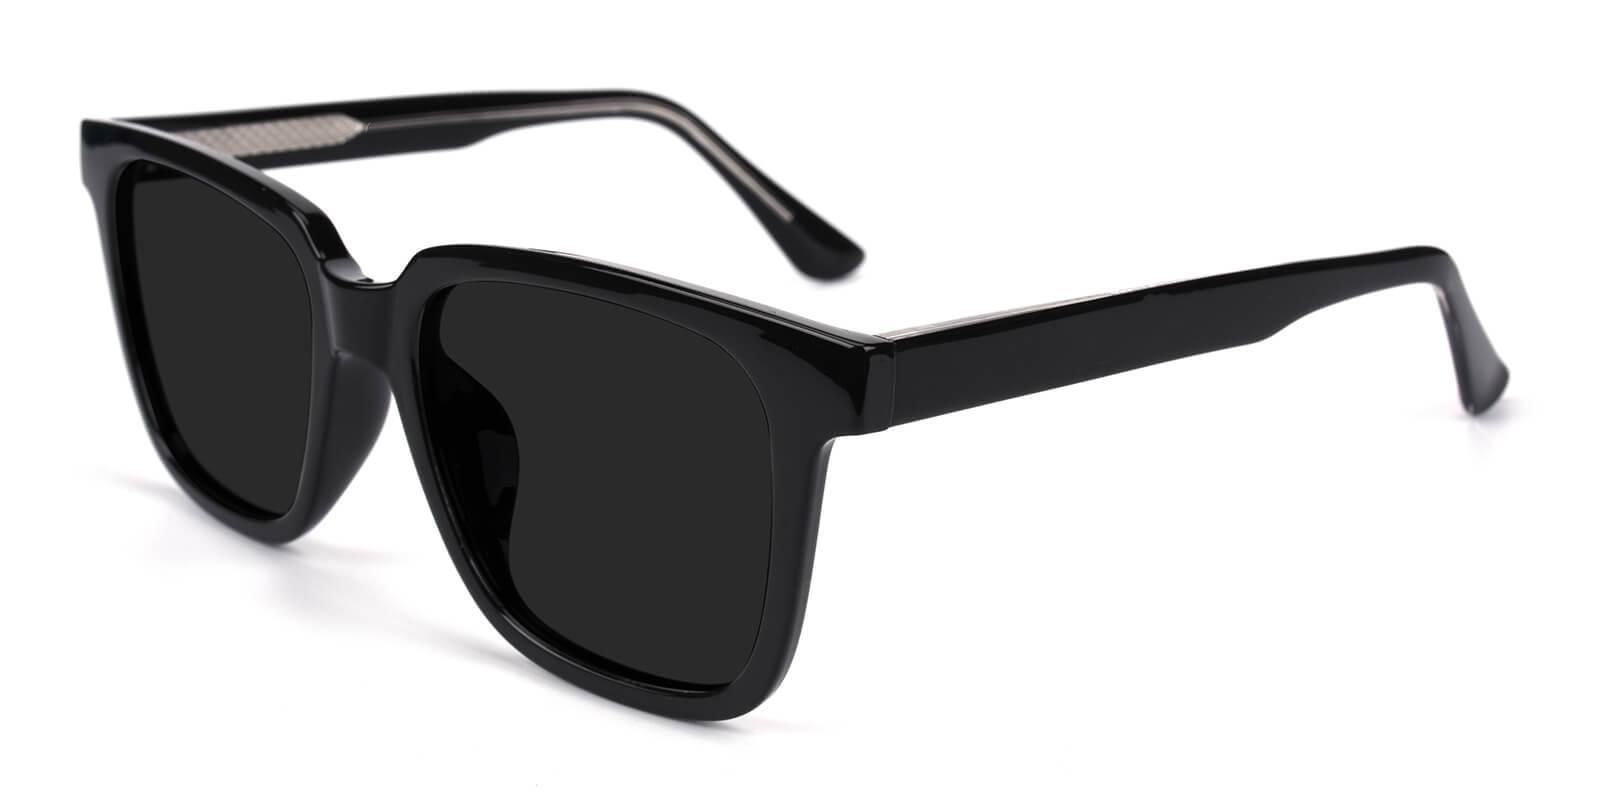 Reason Black Acetate SpringHinges , Sunglasses , UniversalBridgeFit Frames from ABBE Glasses